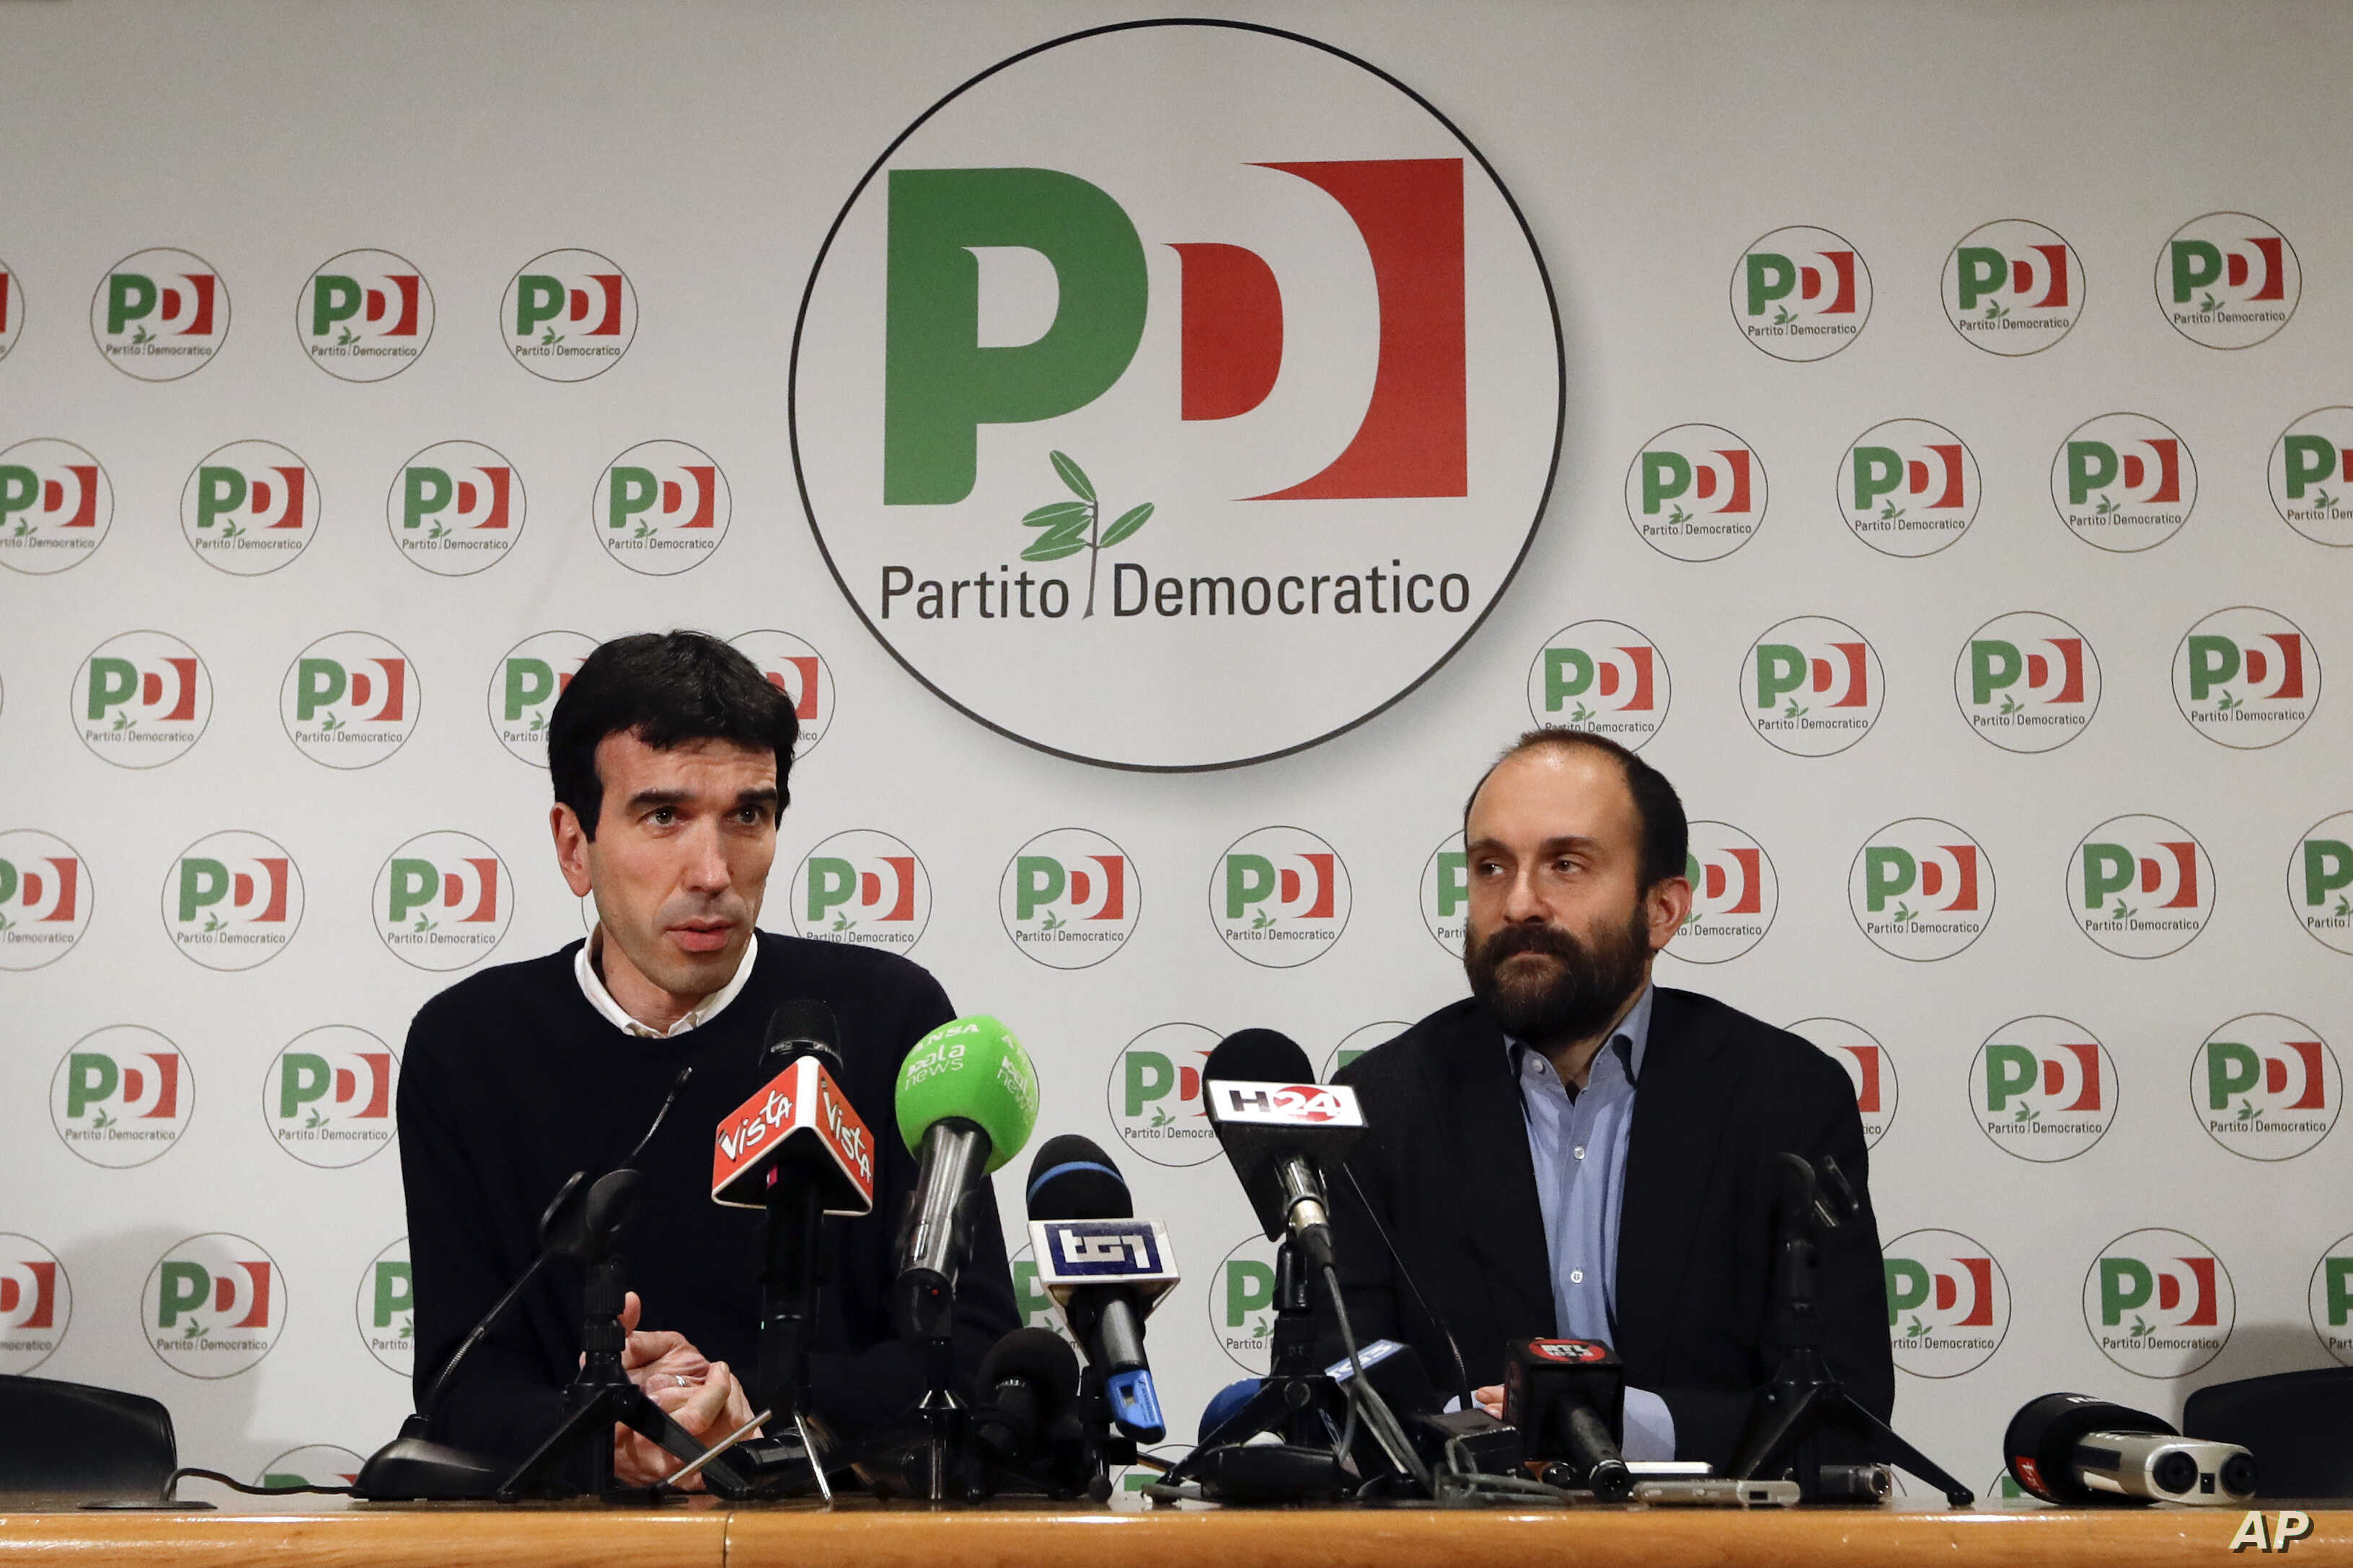 Democratic Party lawmaker Maurizio Martina, left, and President Matteo Orfini talk to journalists in the party's headquarters, in Rome, March 4, 2018.